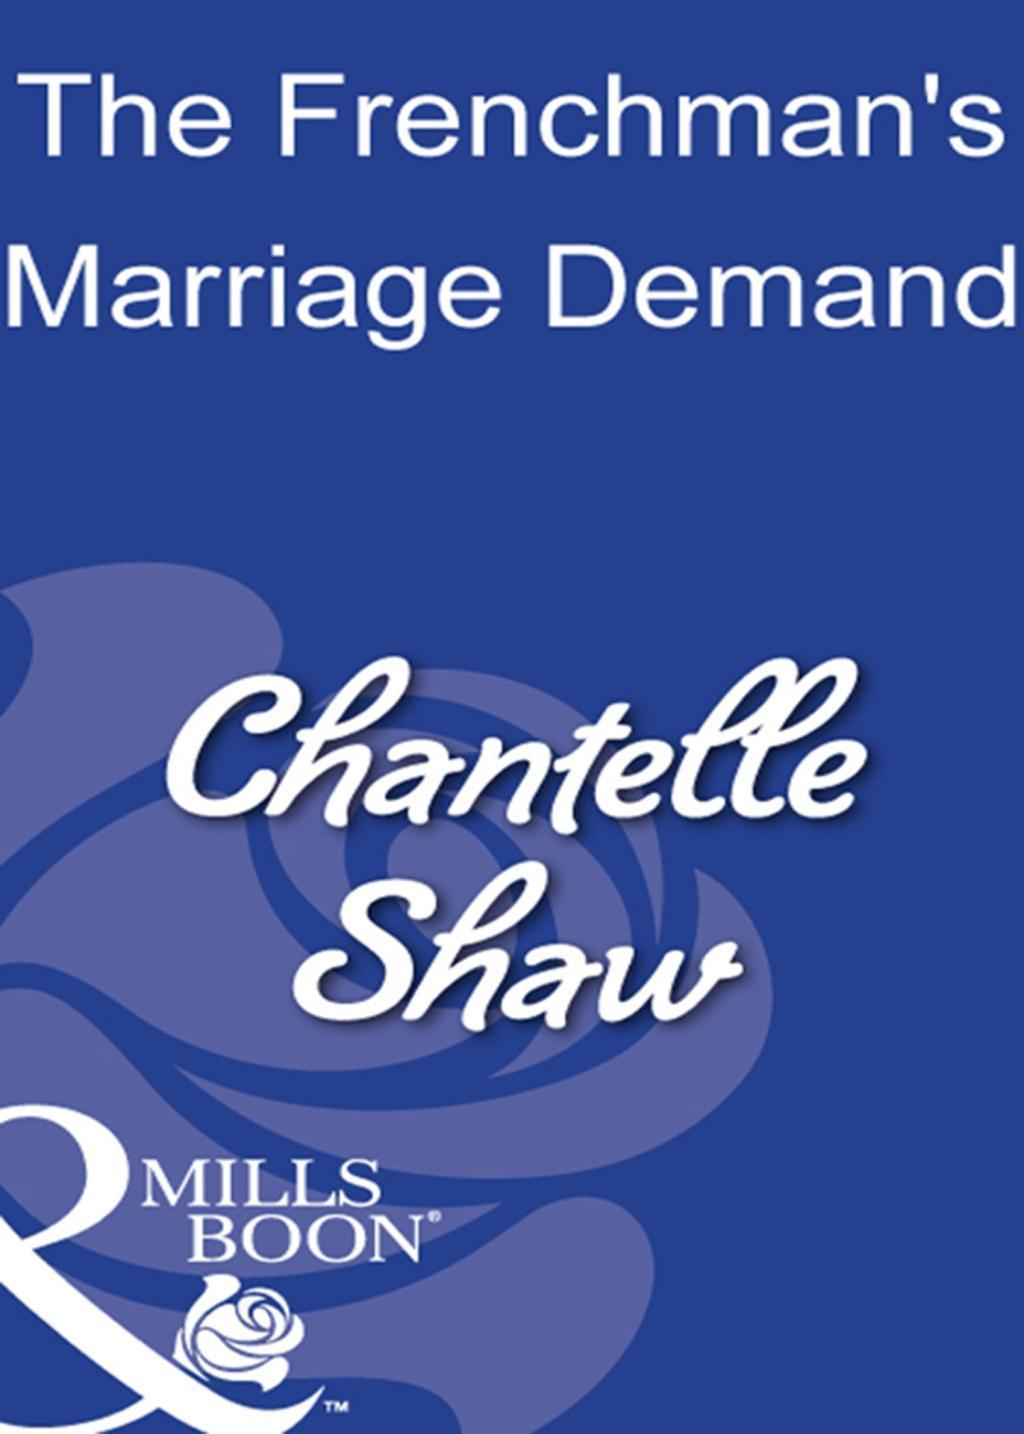 The Frenchman's Marriage Demand (Mills & Boon Modern)